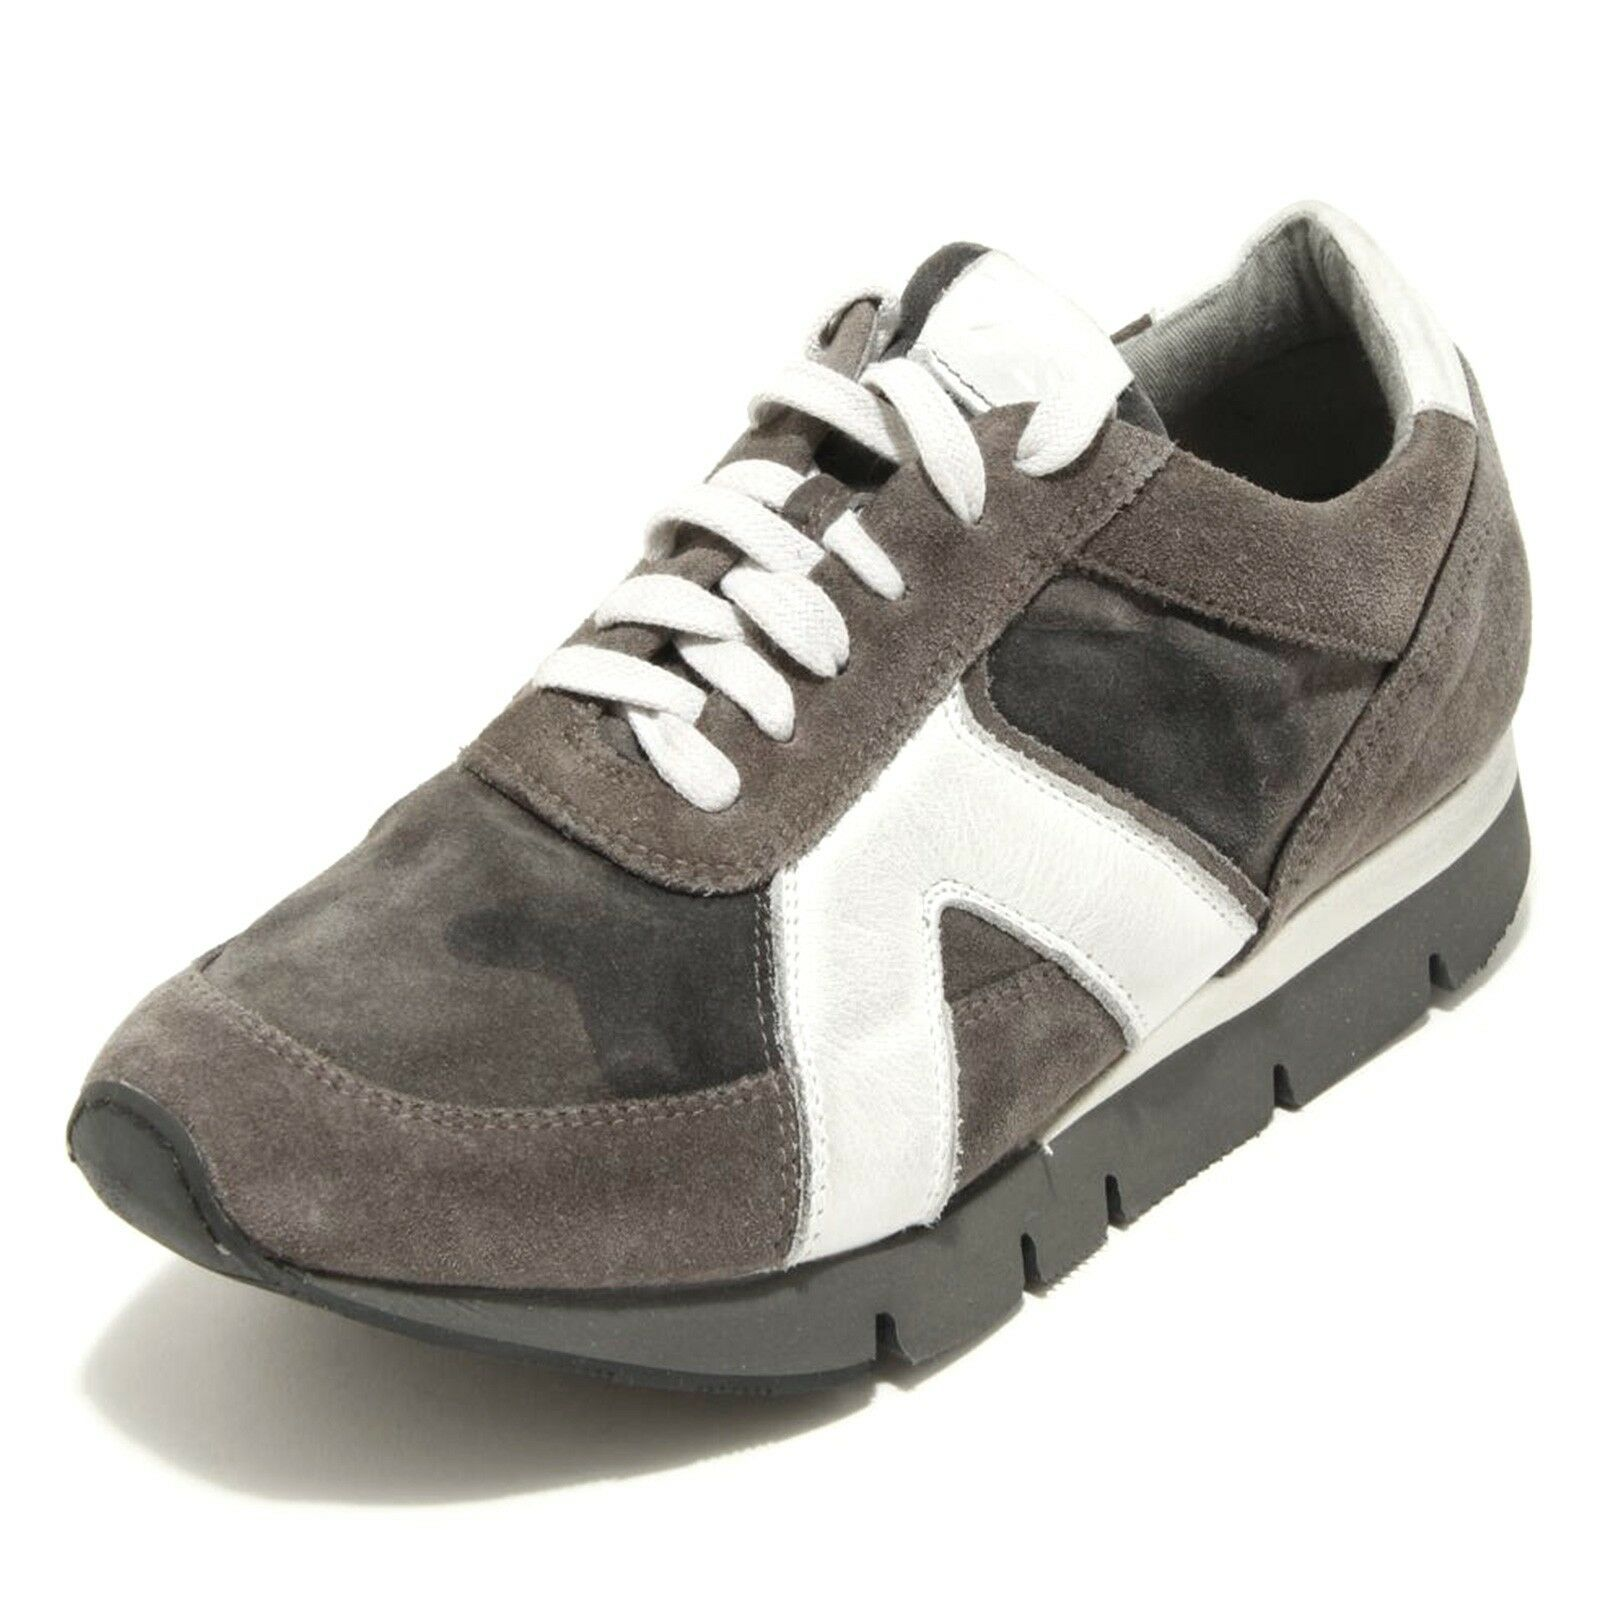 2352G sneaker grigia O.X.S. scarpa uomo shoes men